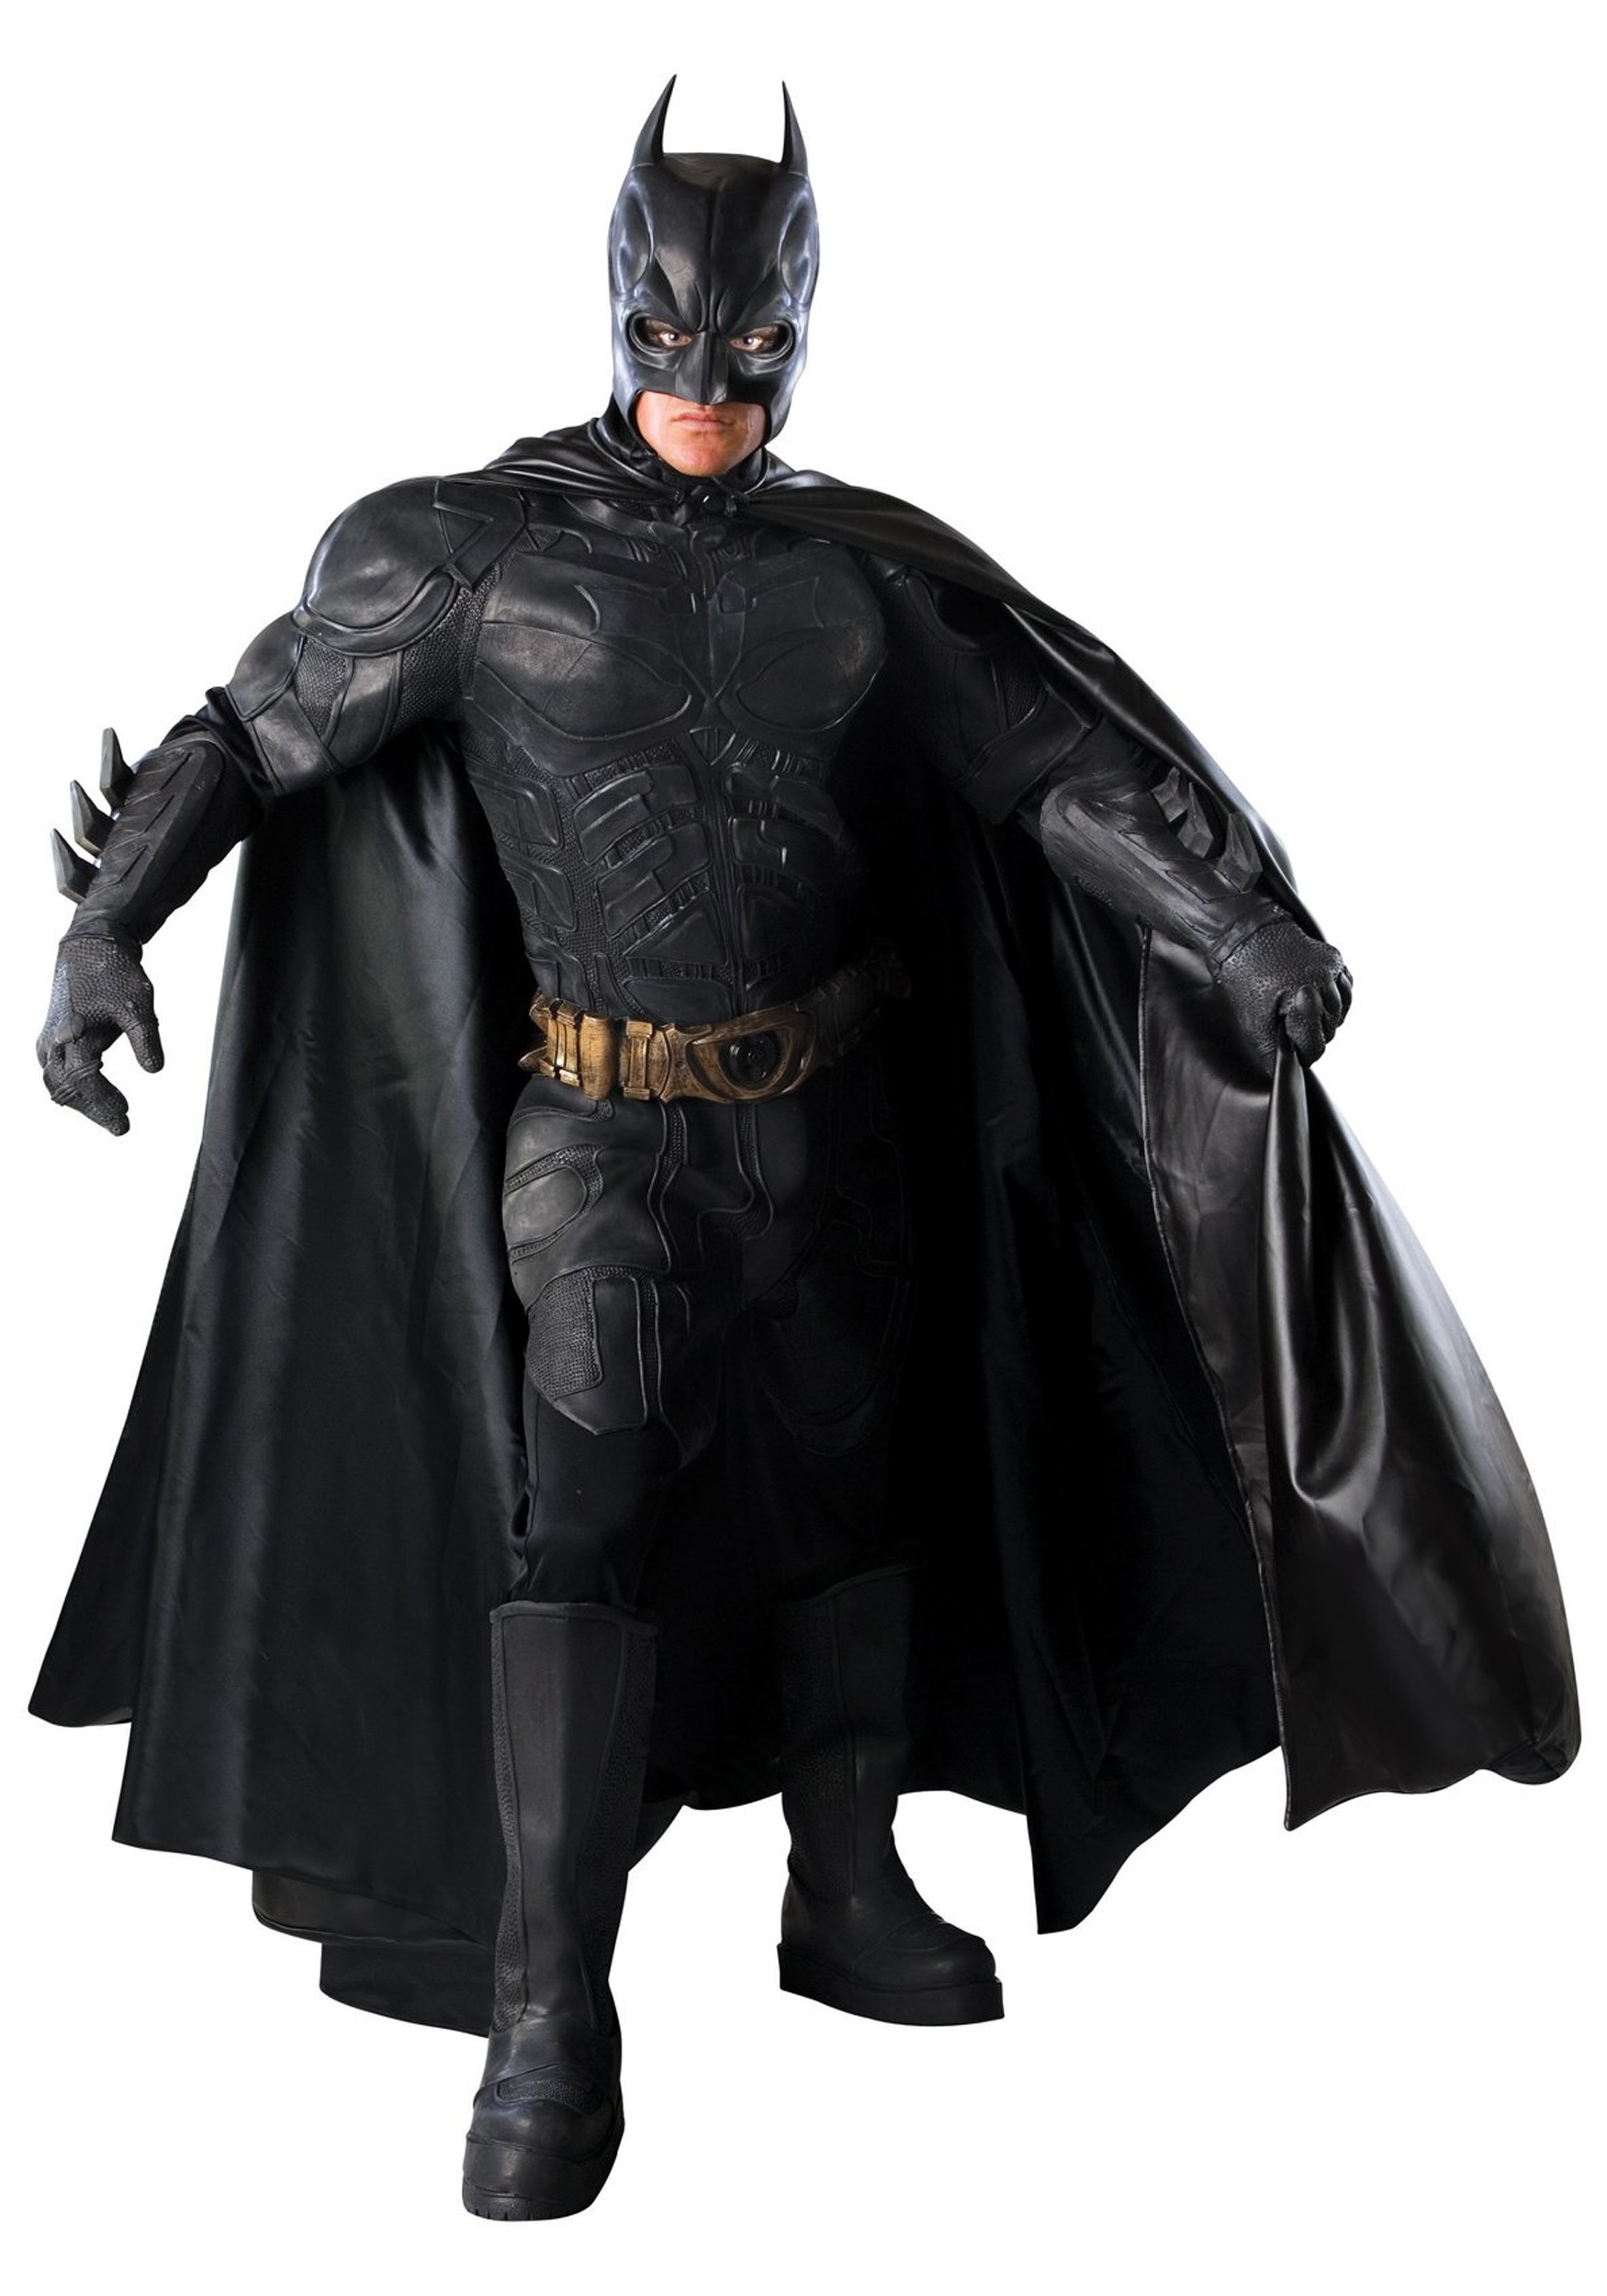 http://images.halloweencostumes.co.uk/products/9103/1-1/dark-knight-authentic-batman-costume.jpg